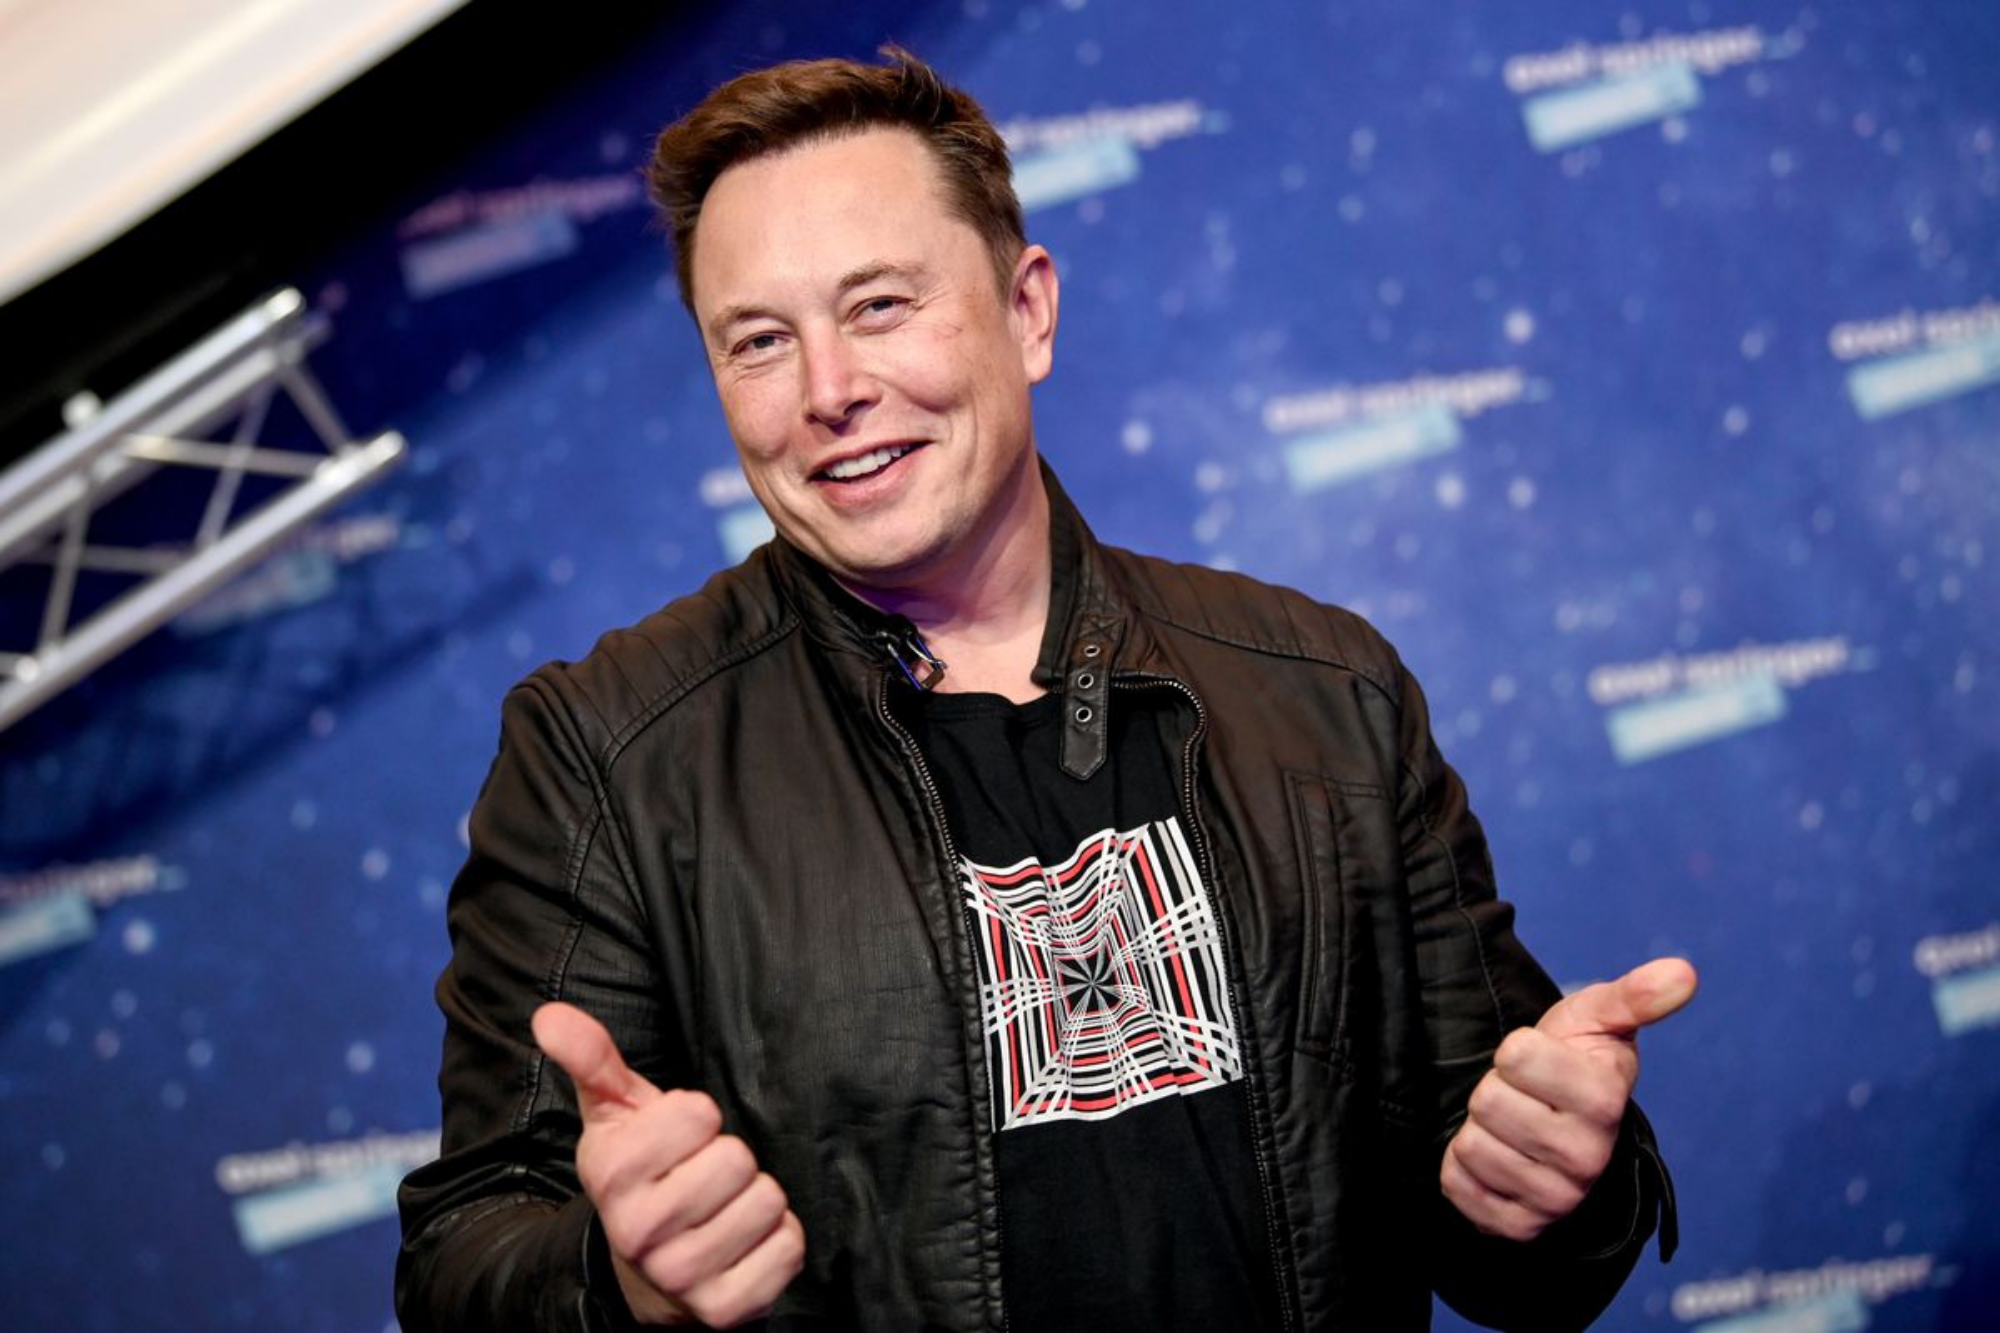 Elon Musk will present a $ 100 million prize for the best carbon capture technology